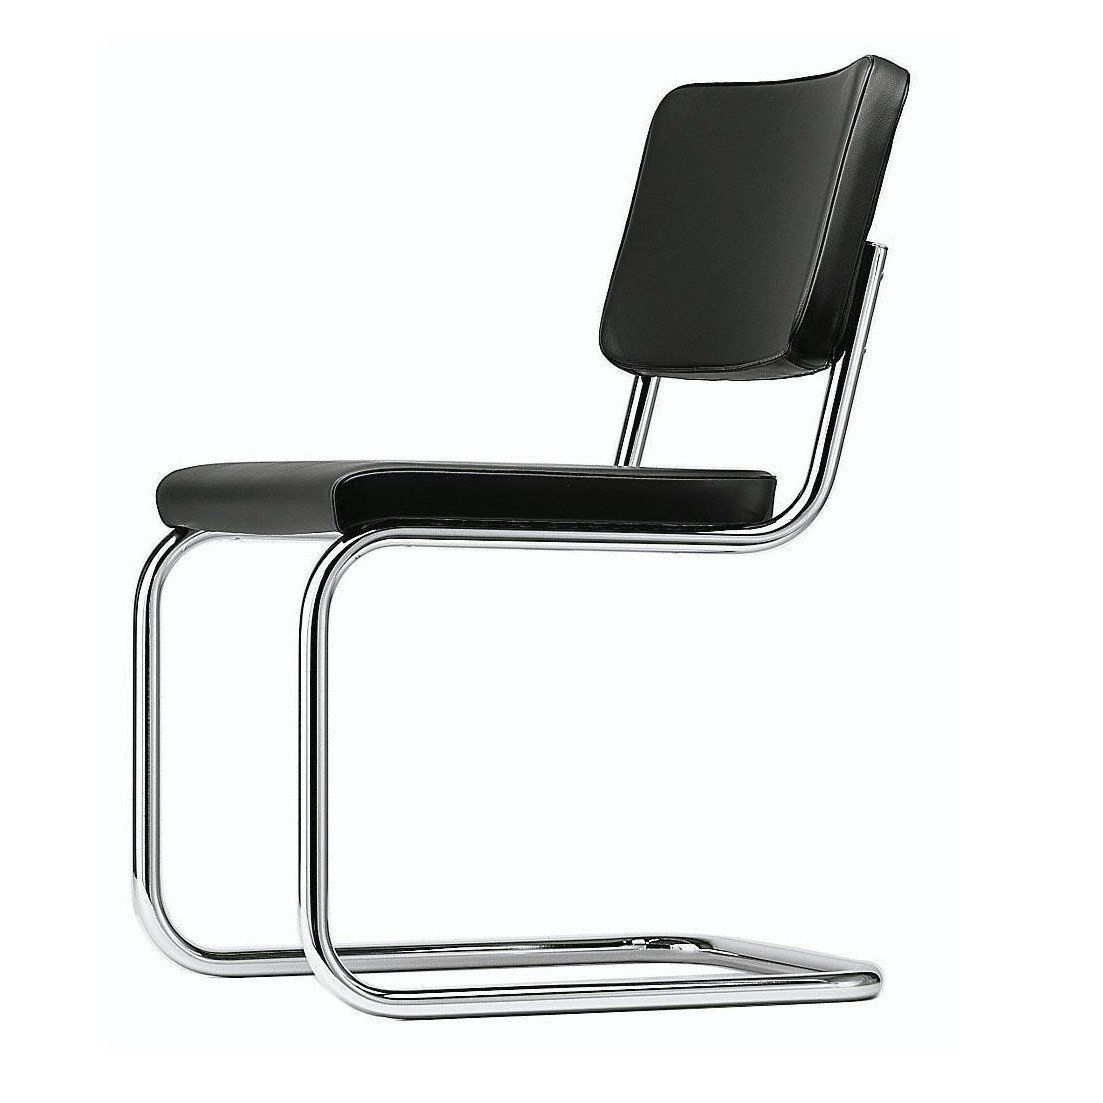 ... Thonet   S 32 Cantilever Chair   Black 622/leather/frame Chrome ...